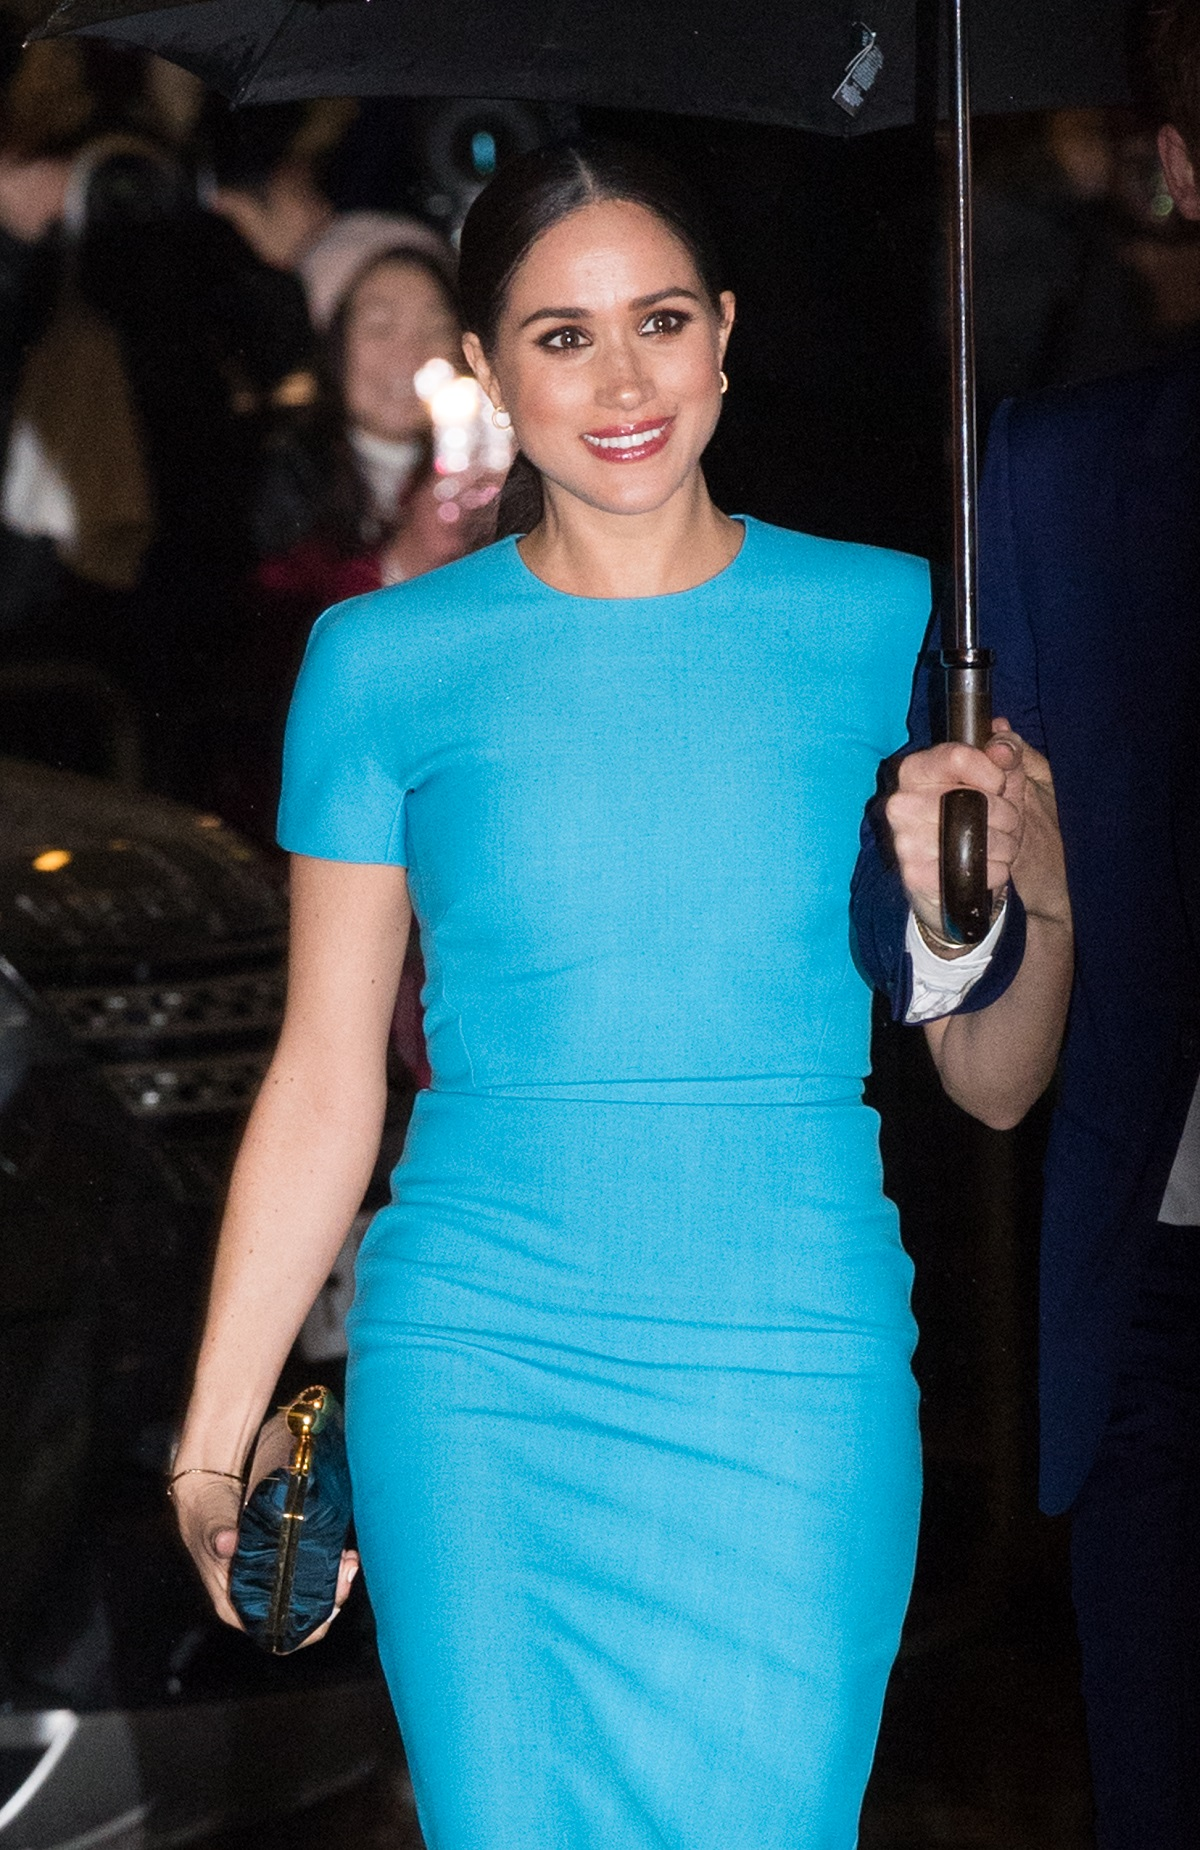 Meghan, Duchess of Sussex, in a blue dress and holding an umbrella and clutch purse on her way to the Endeavour Fund Awards at Mansion House in London in Mar. 2020